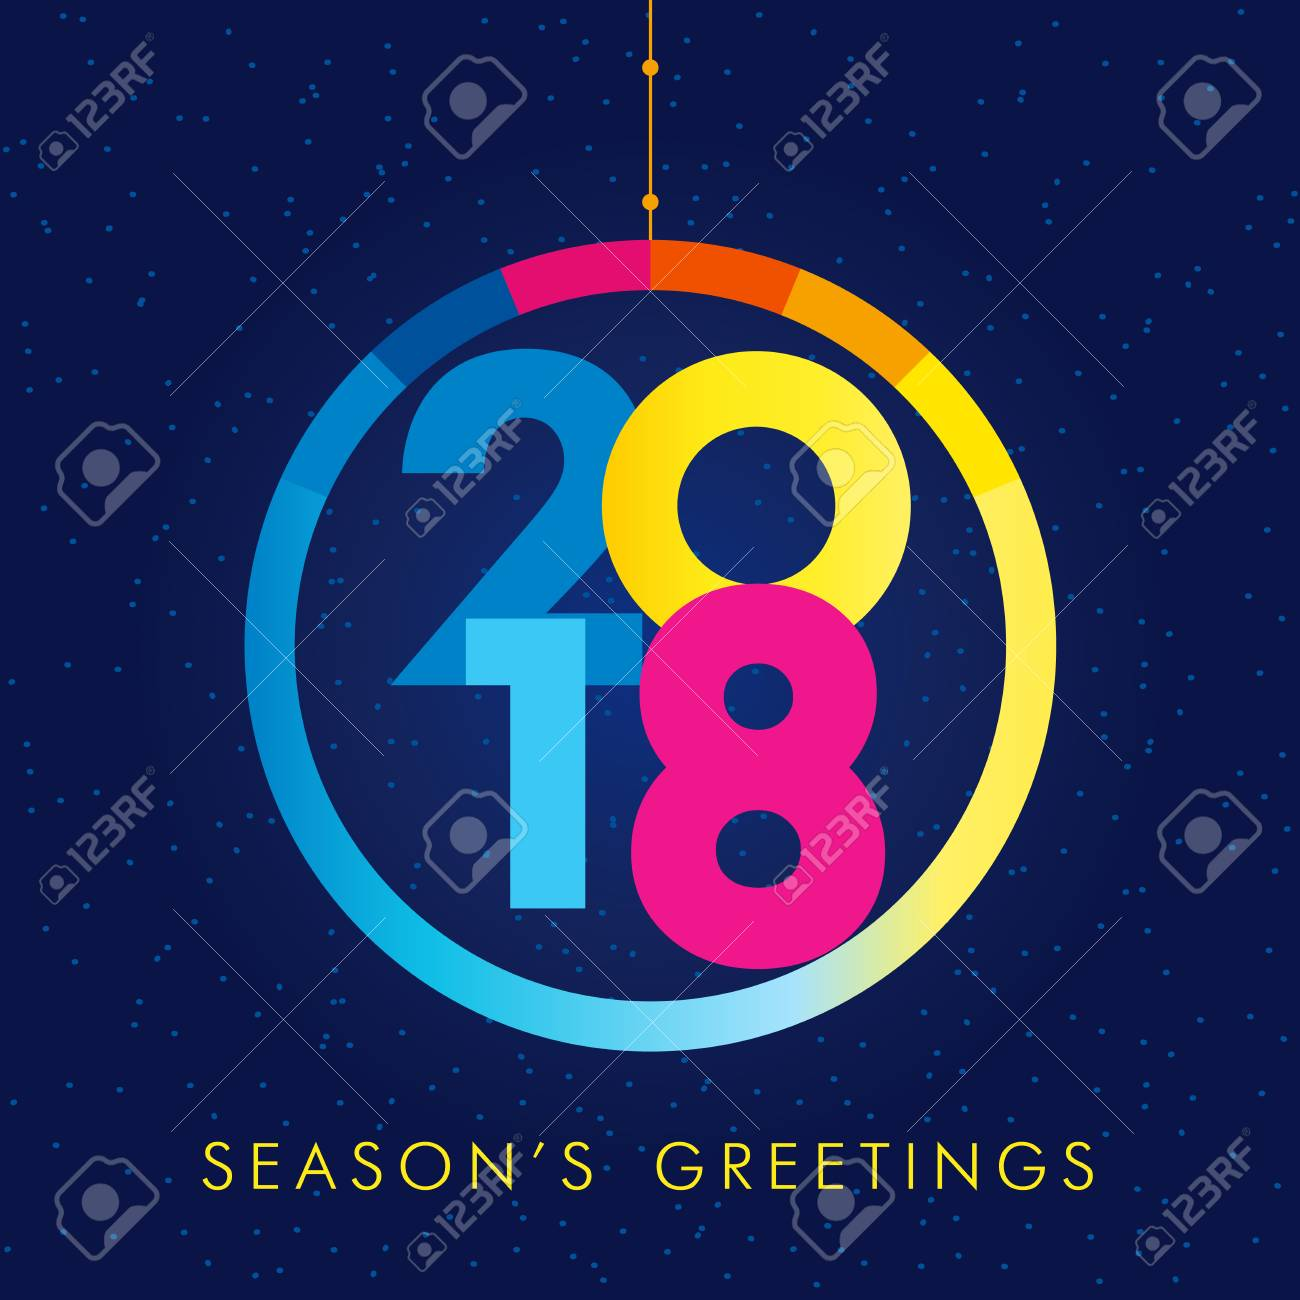 2018 seasons greetings happy new year card christmas ball 2018 seasons greetings happy new year card christmas ball consisting of colored vector 2018 numbers kristyandbryce Image collections